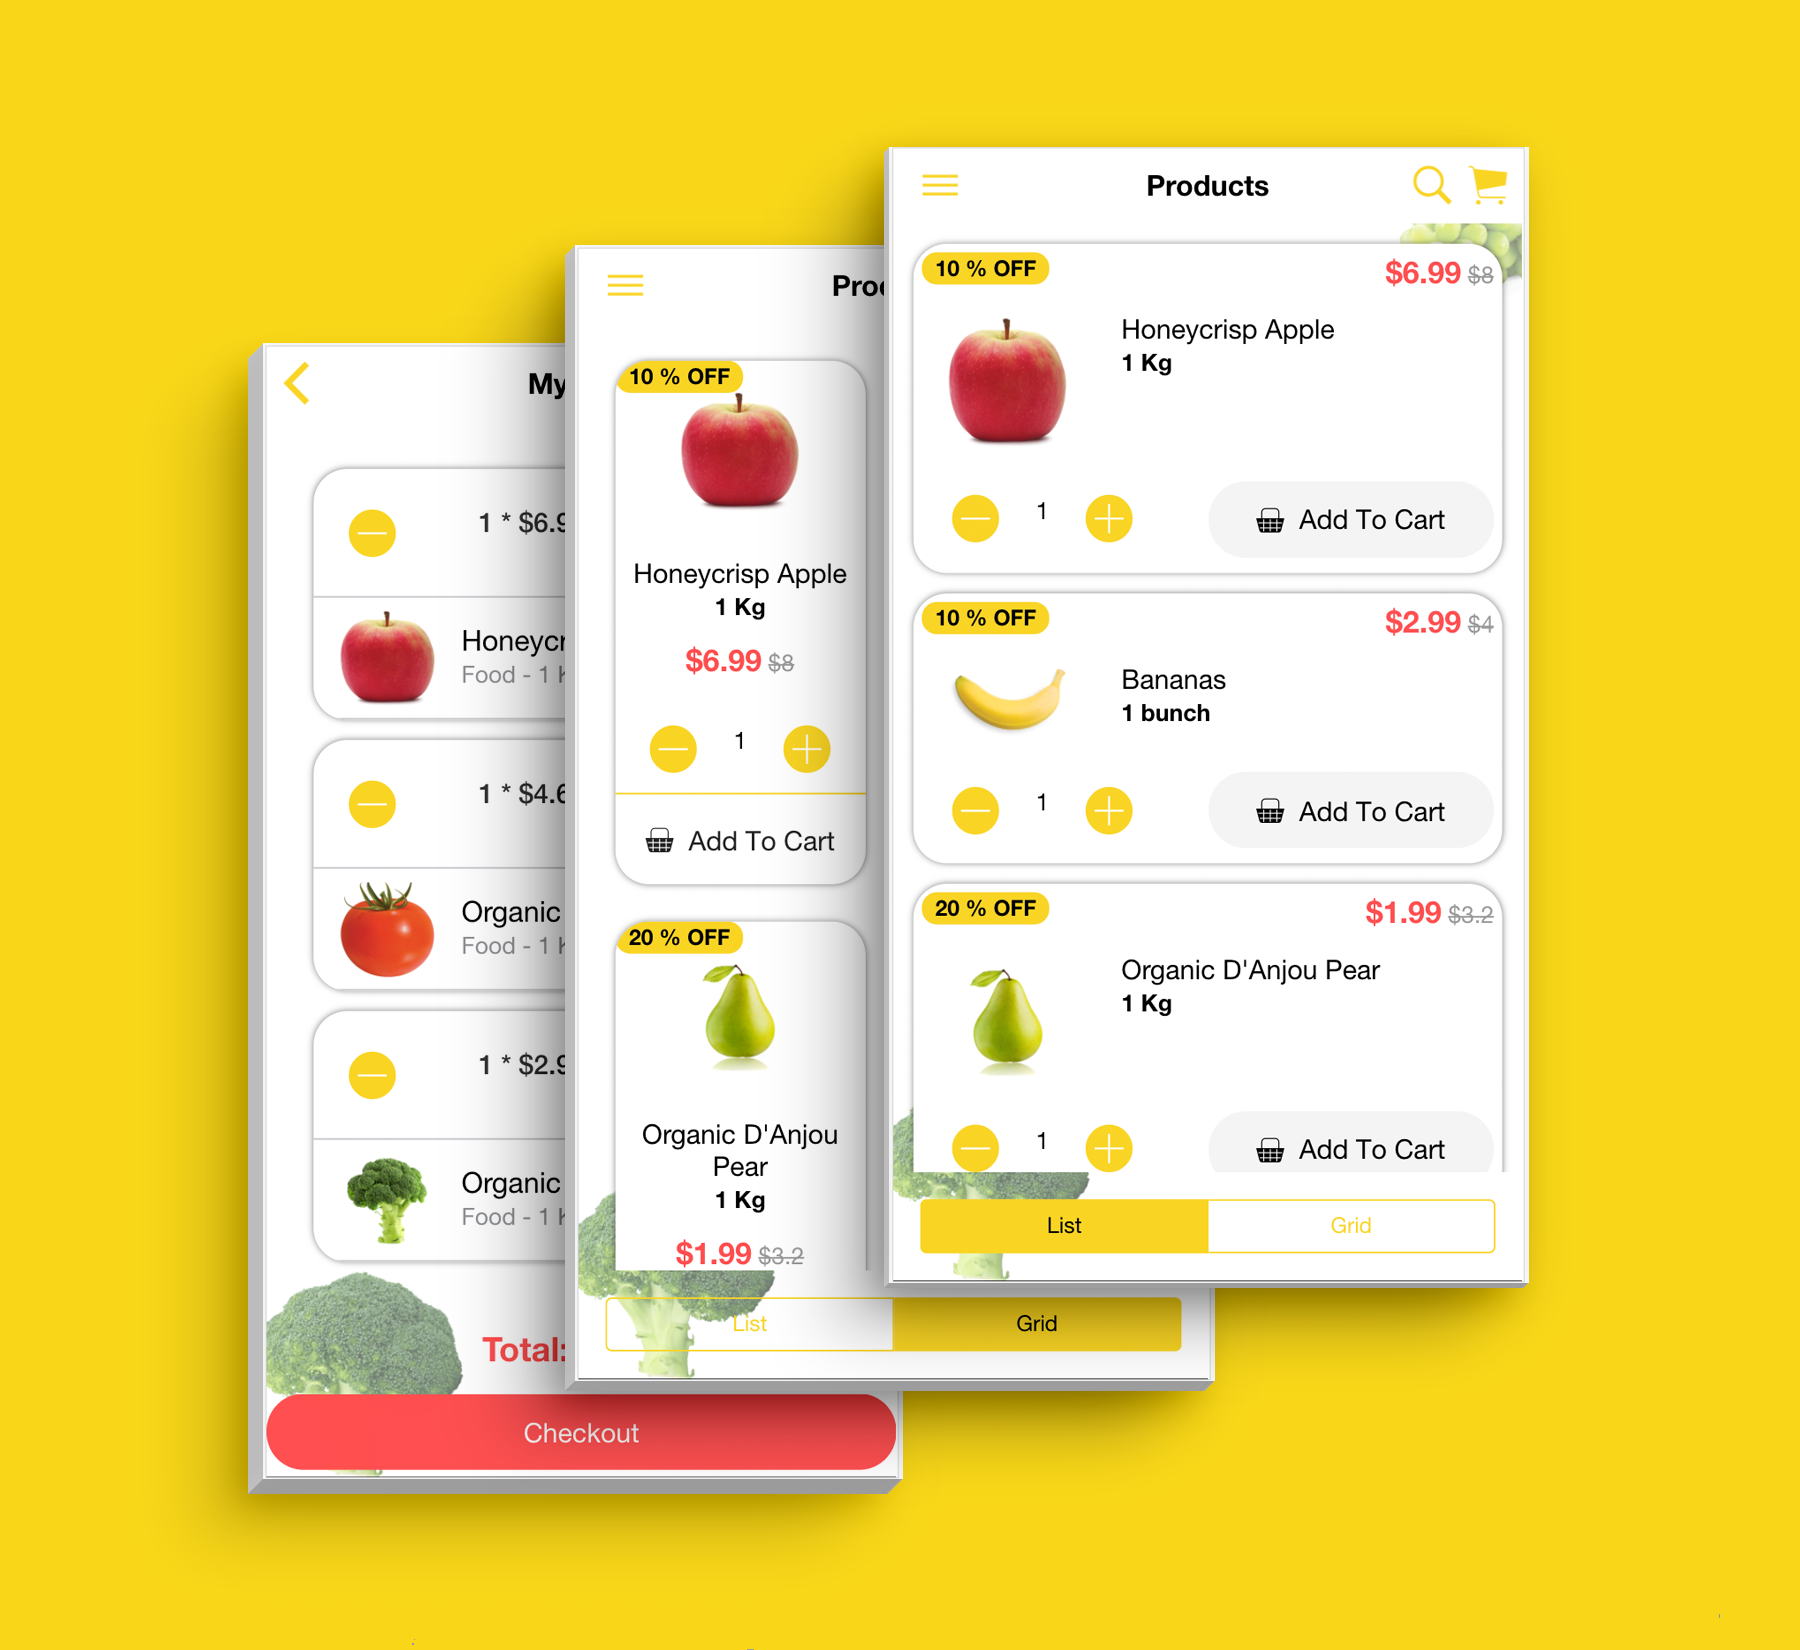 Complete Multipurpose eCommerce Template UI Grocery App Supports Multiple Language i18n - 9